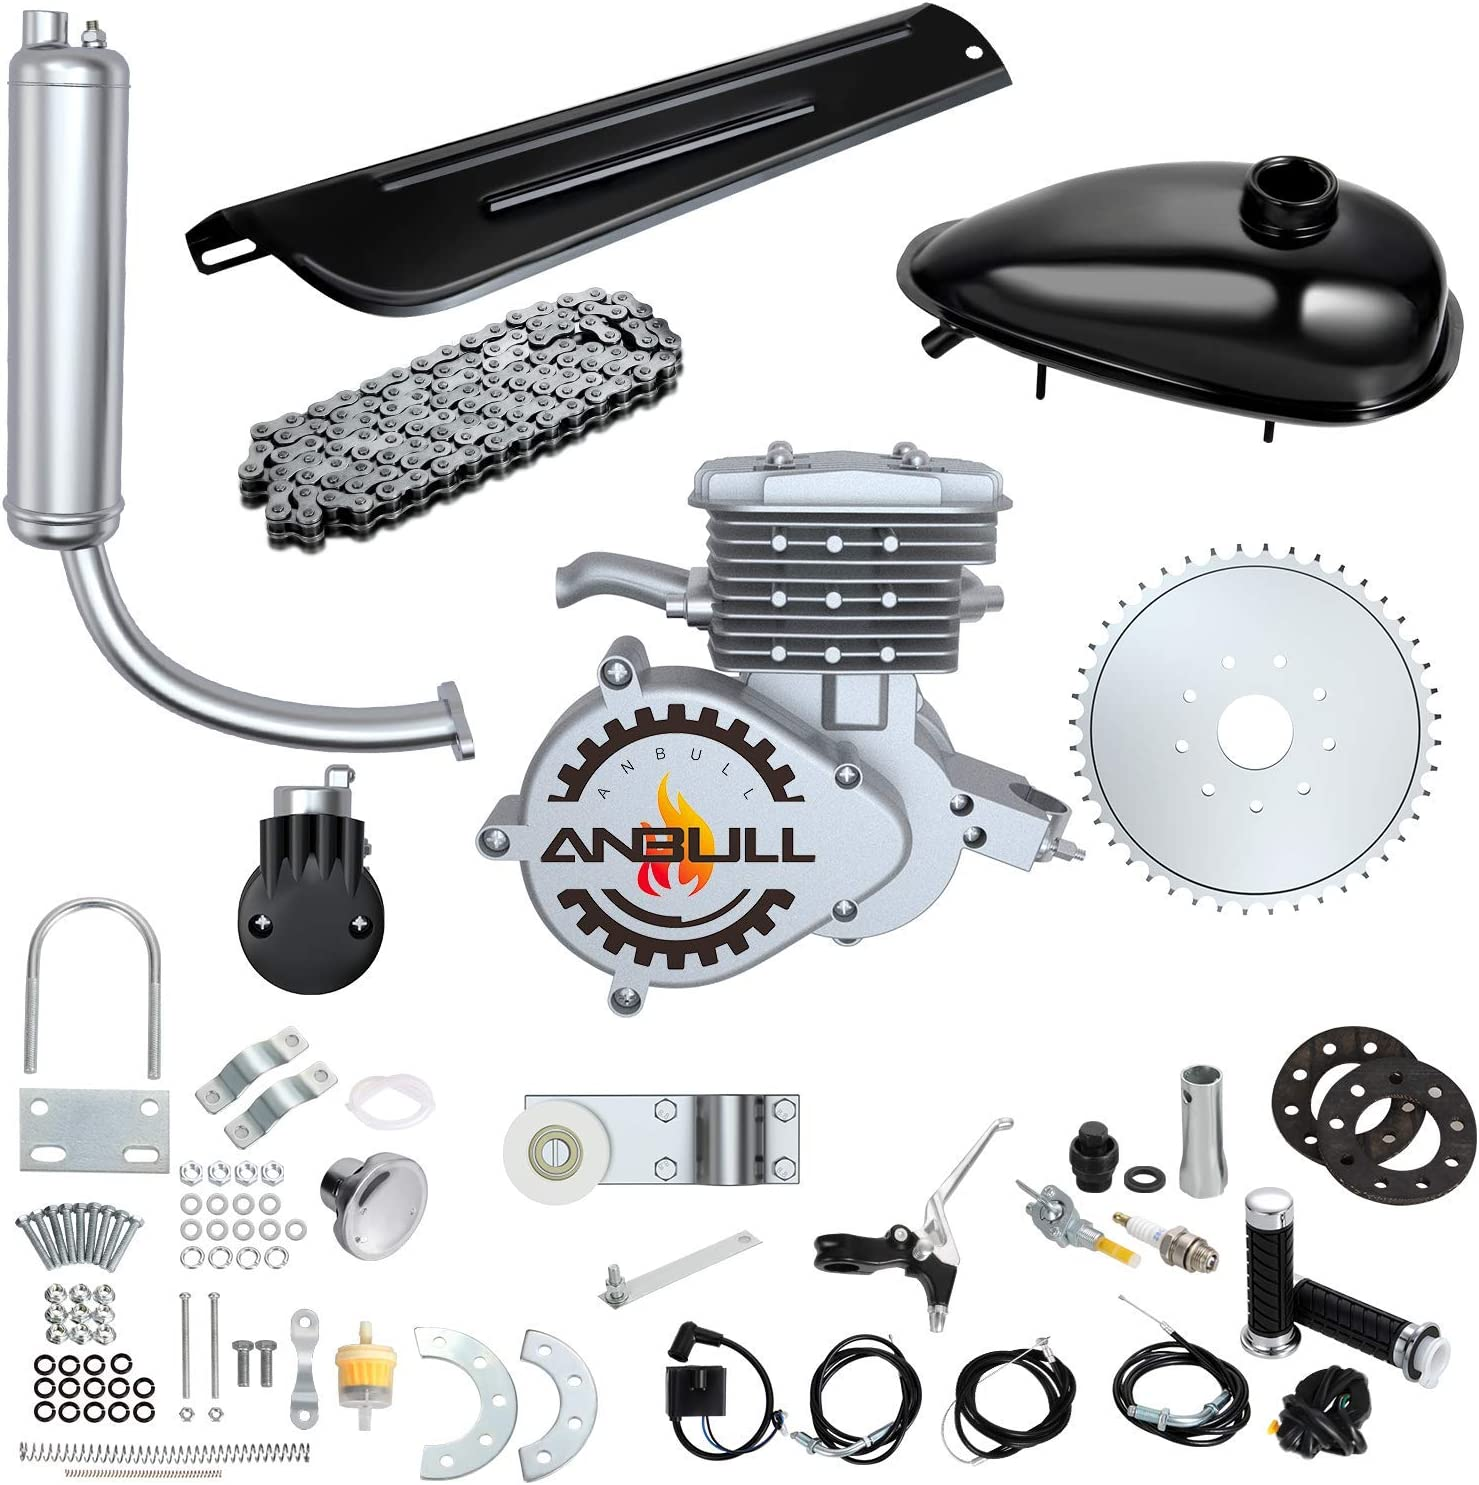 HGC Complete Engine Kit W//Upgraded Chain Tension Black For 80cc 2 Stroke Gas Motorized Bicycle Bike HGC Complete Engine Kit W//Upgraded Chain Tension Black For 80cc 2 Stroke Gas Motorized Bicycle Bike